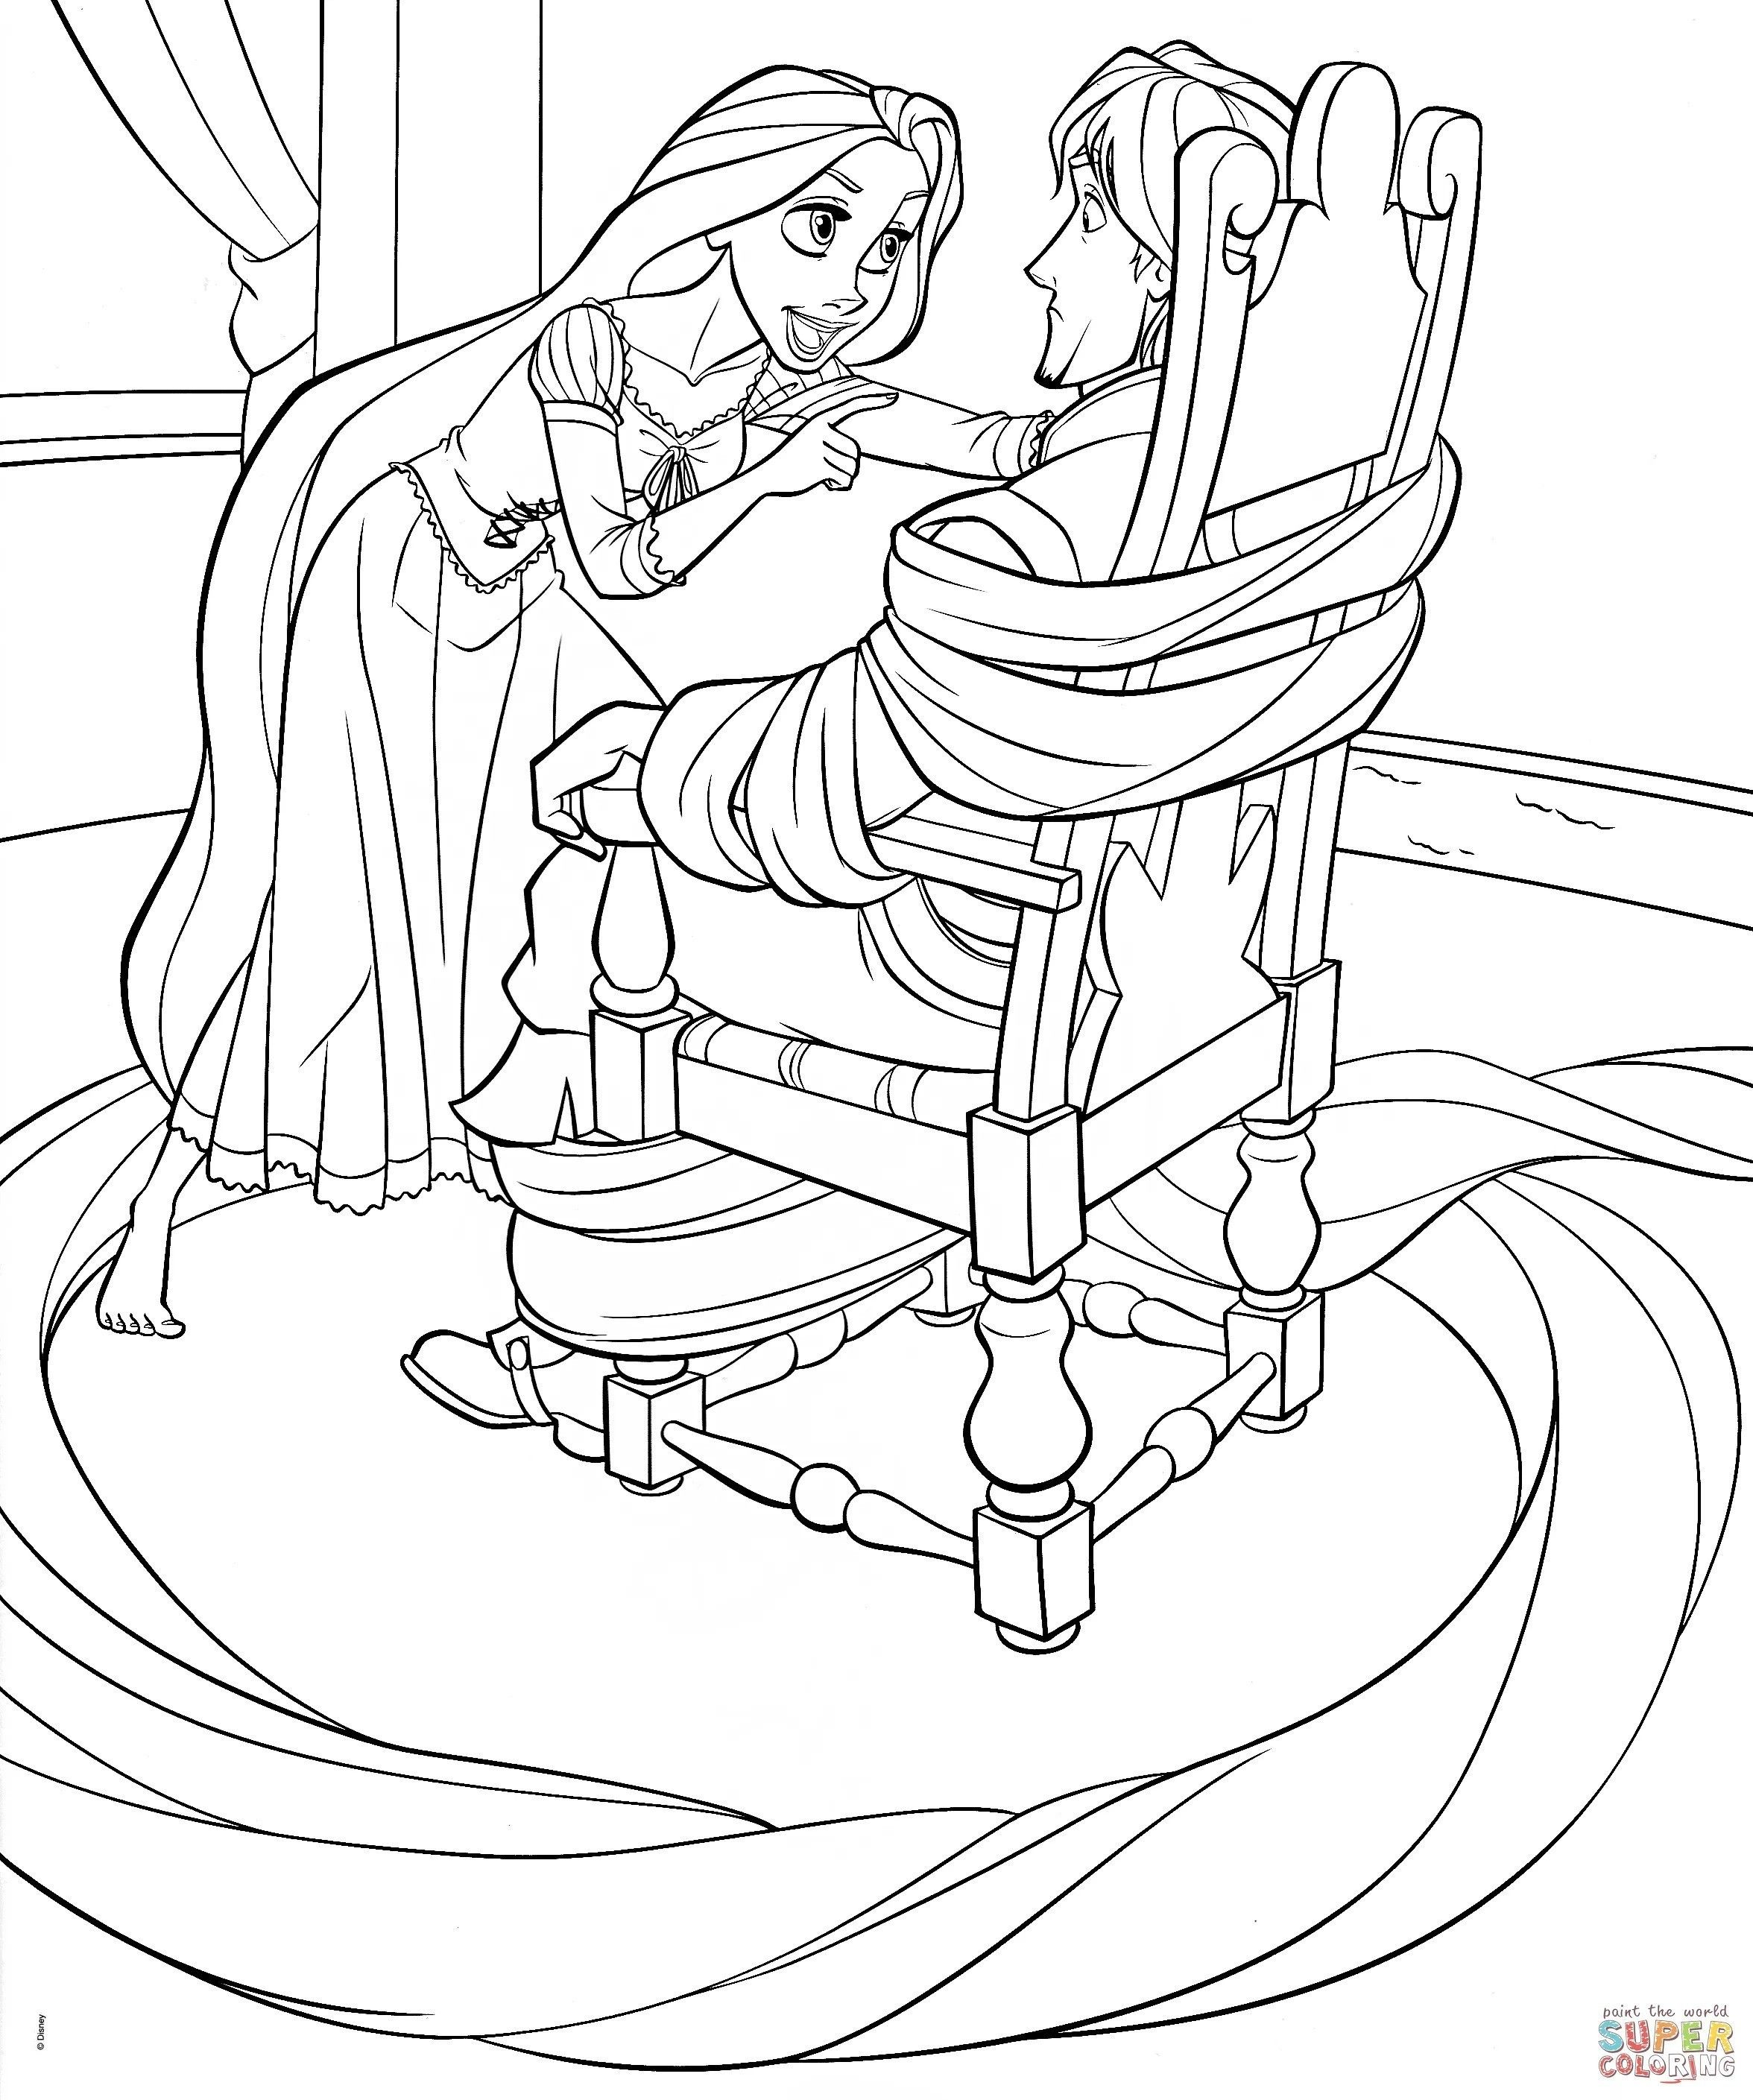 Disney Princess Coloring Pages Rapunzel And Flynn From The Thousand Photos Onli Rapunzel Coloring Pages Disney Princess Coloring Pages Tangled Coloring Pages